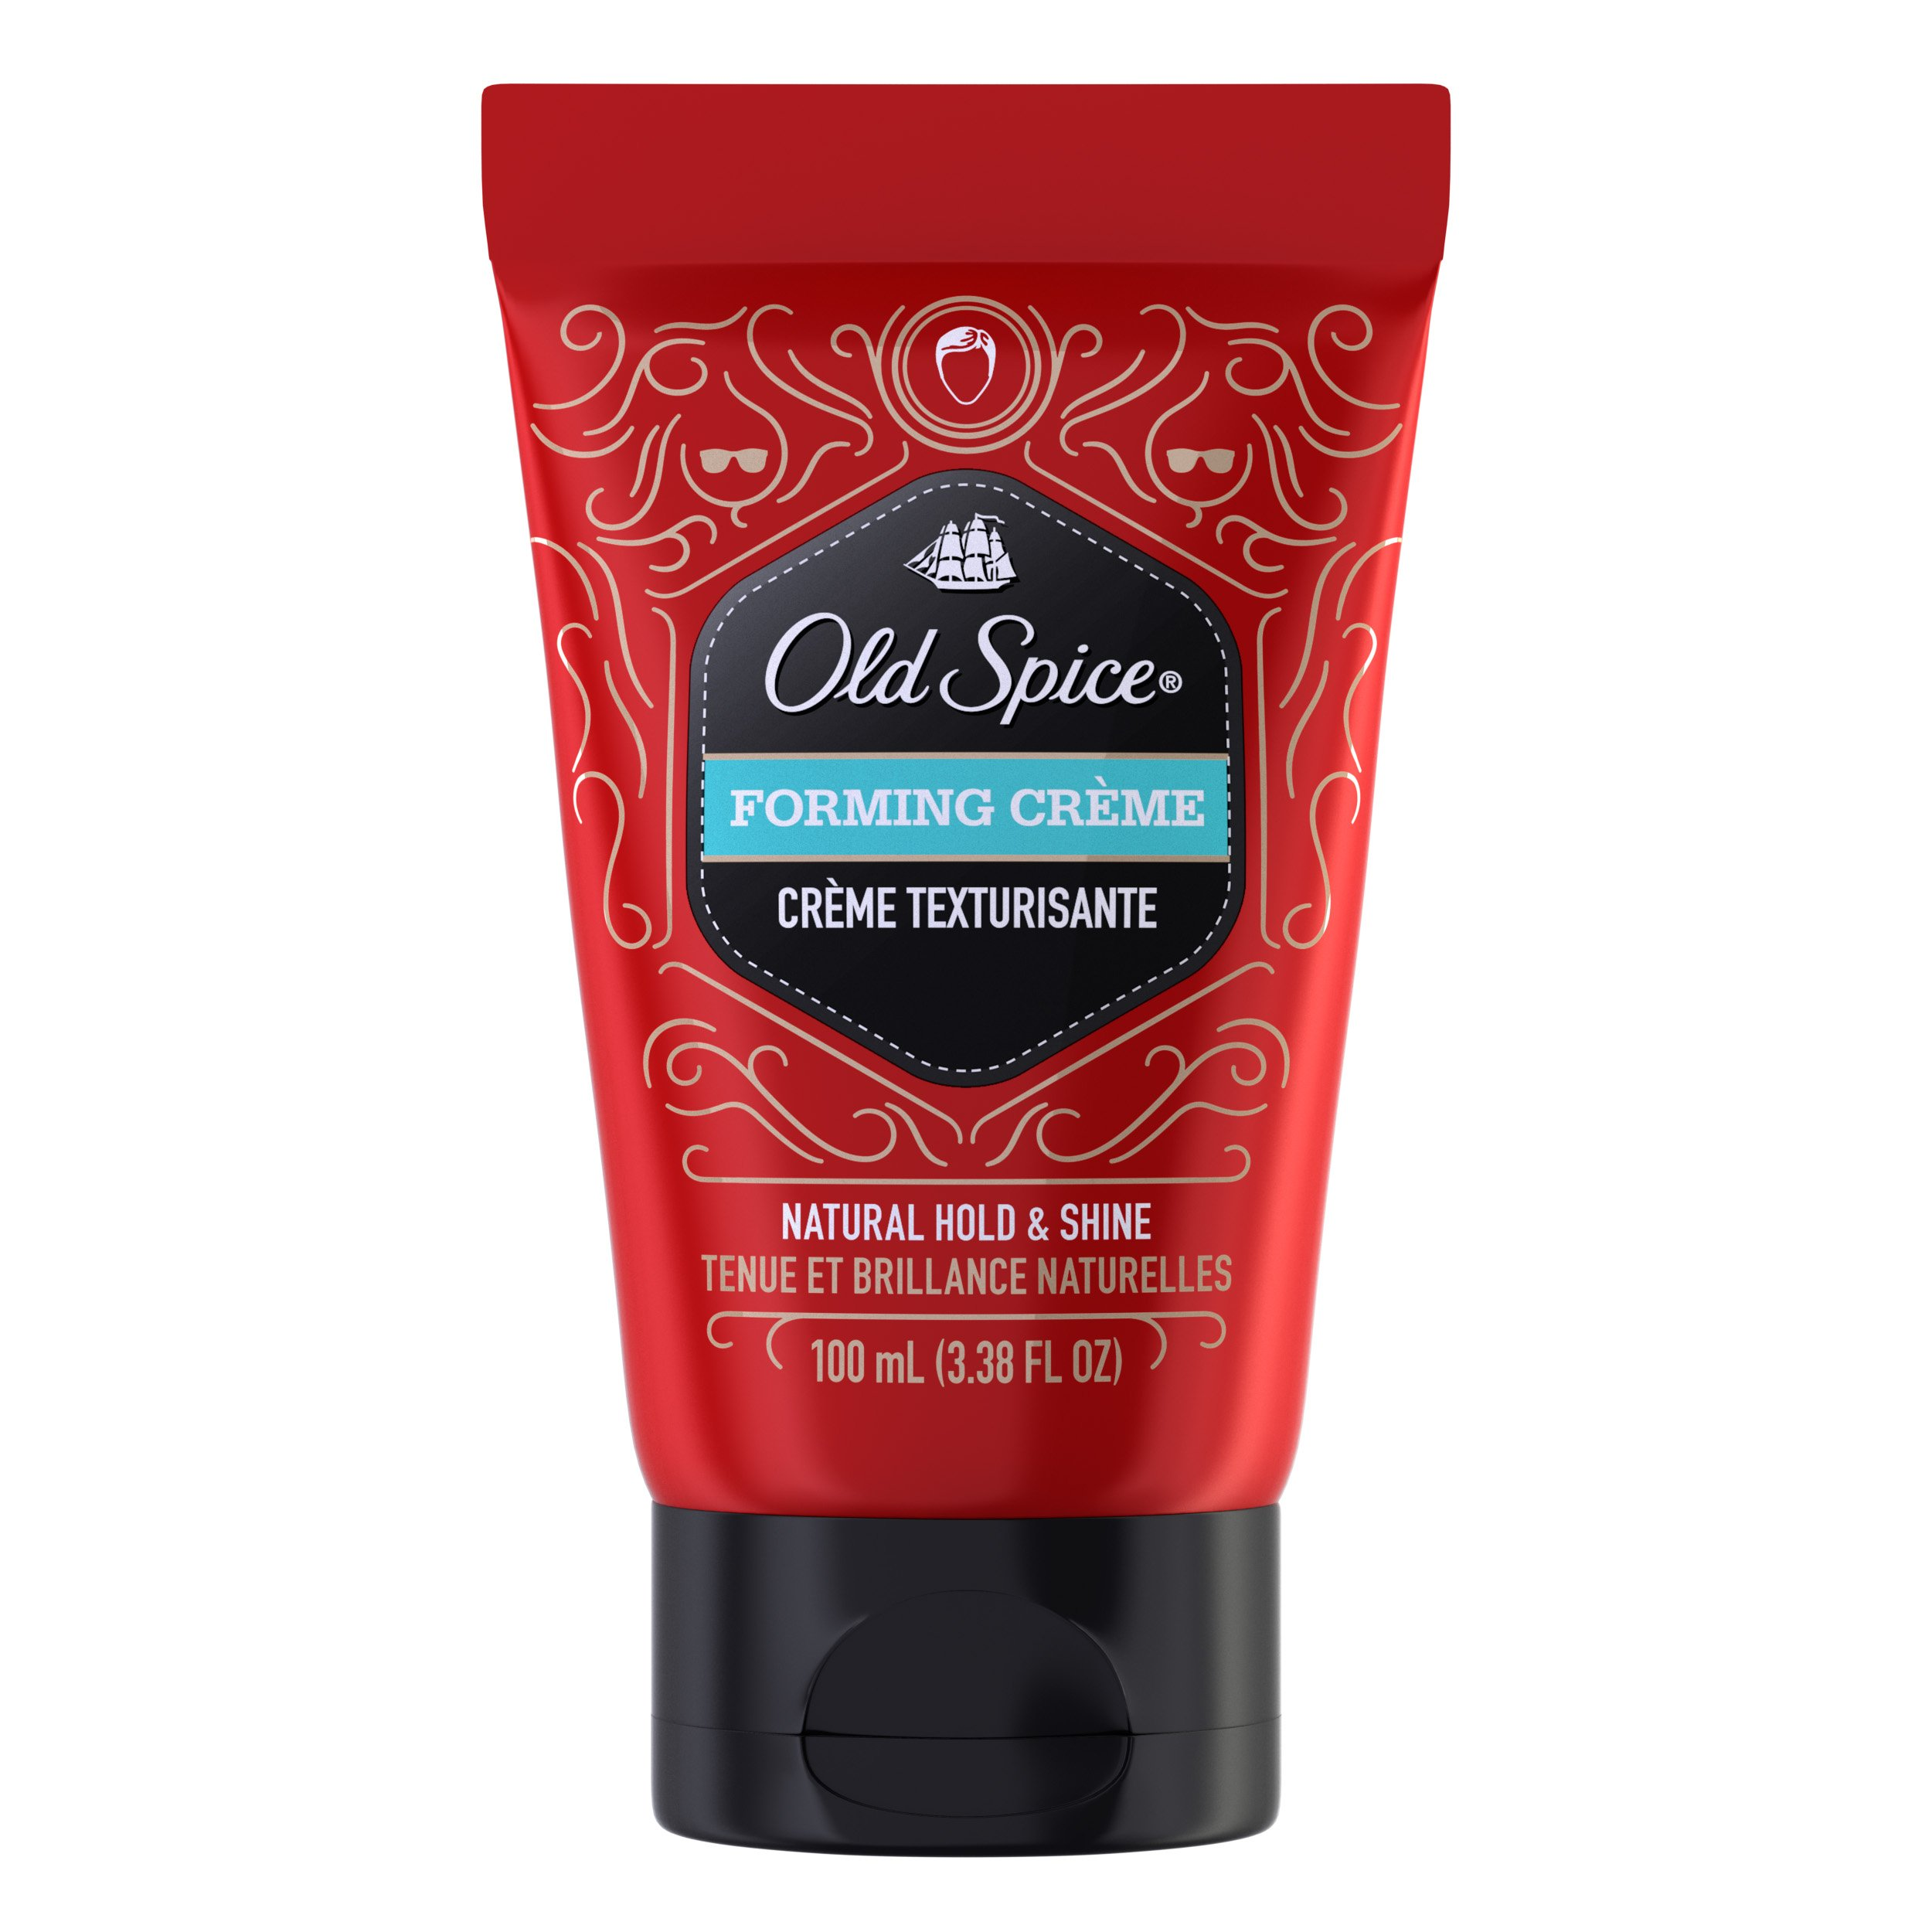 Old Spice Men's Styling Forming Creme 3.38 Fl Oz - Hair Cream